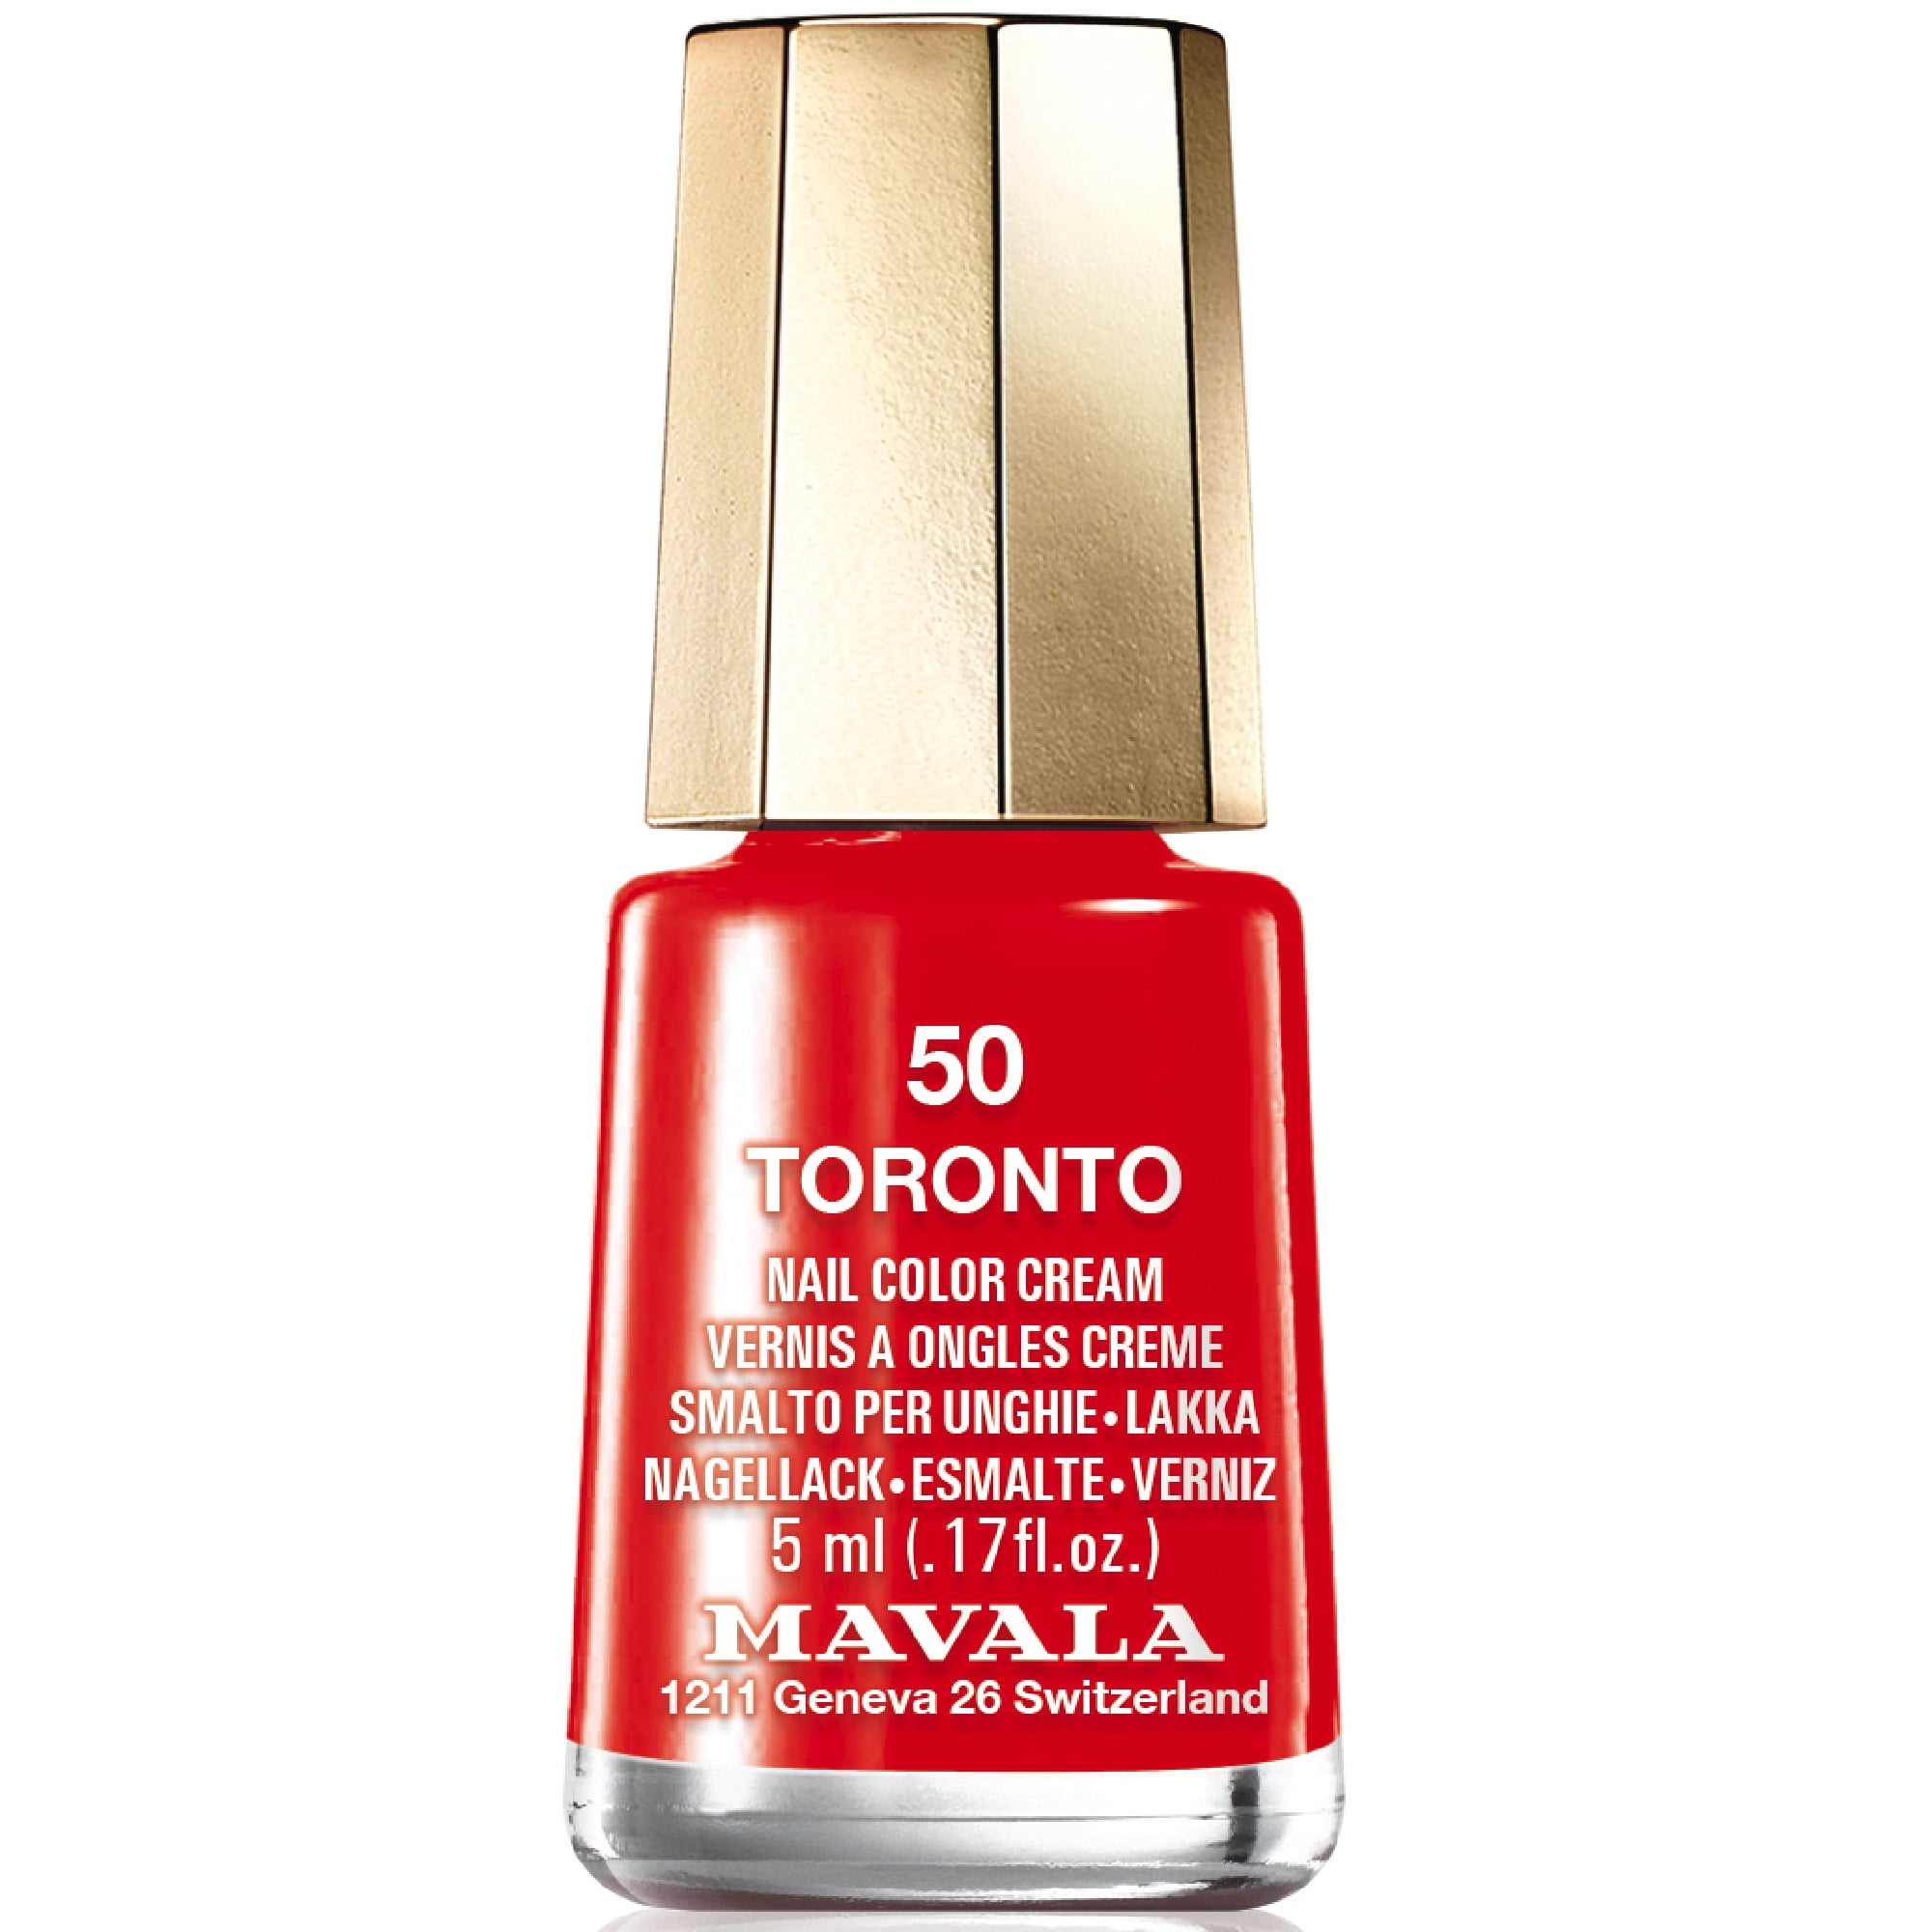 Mavala New Look Color\'s 2017 Nail Polish Collection - Toronto (50) 5ml